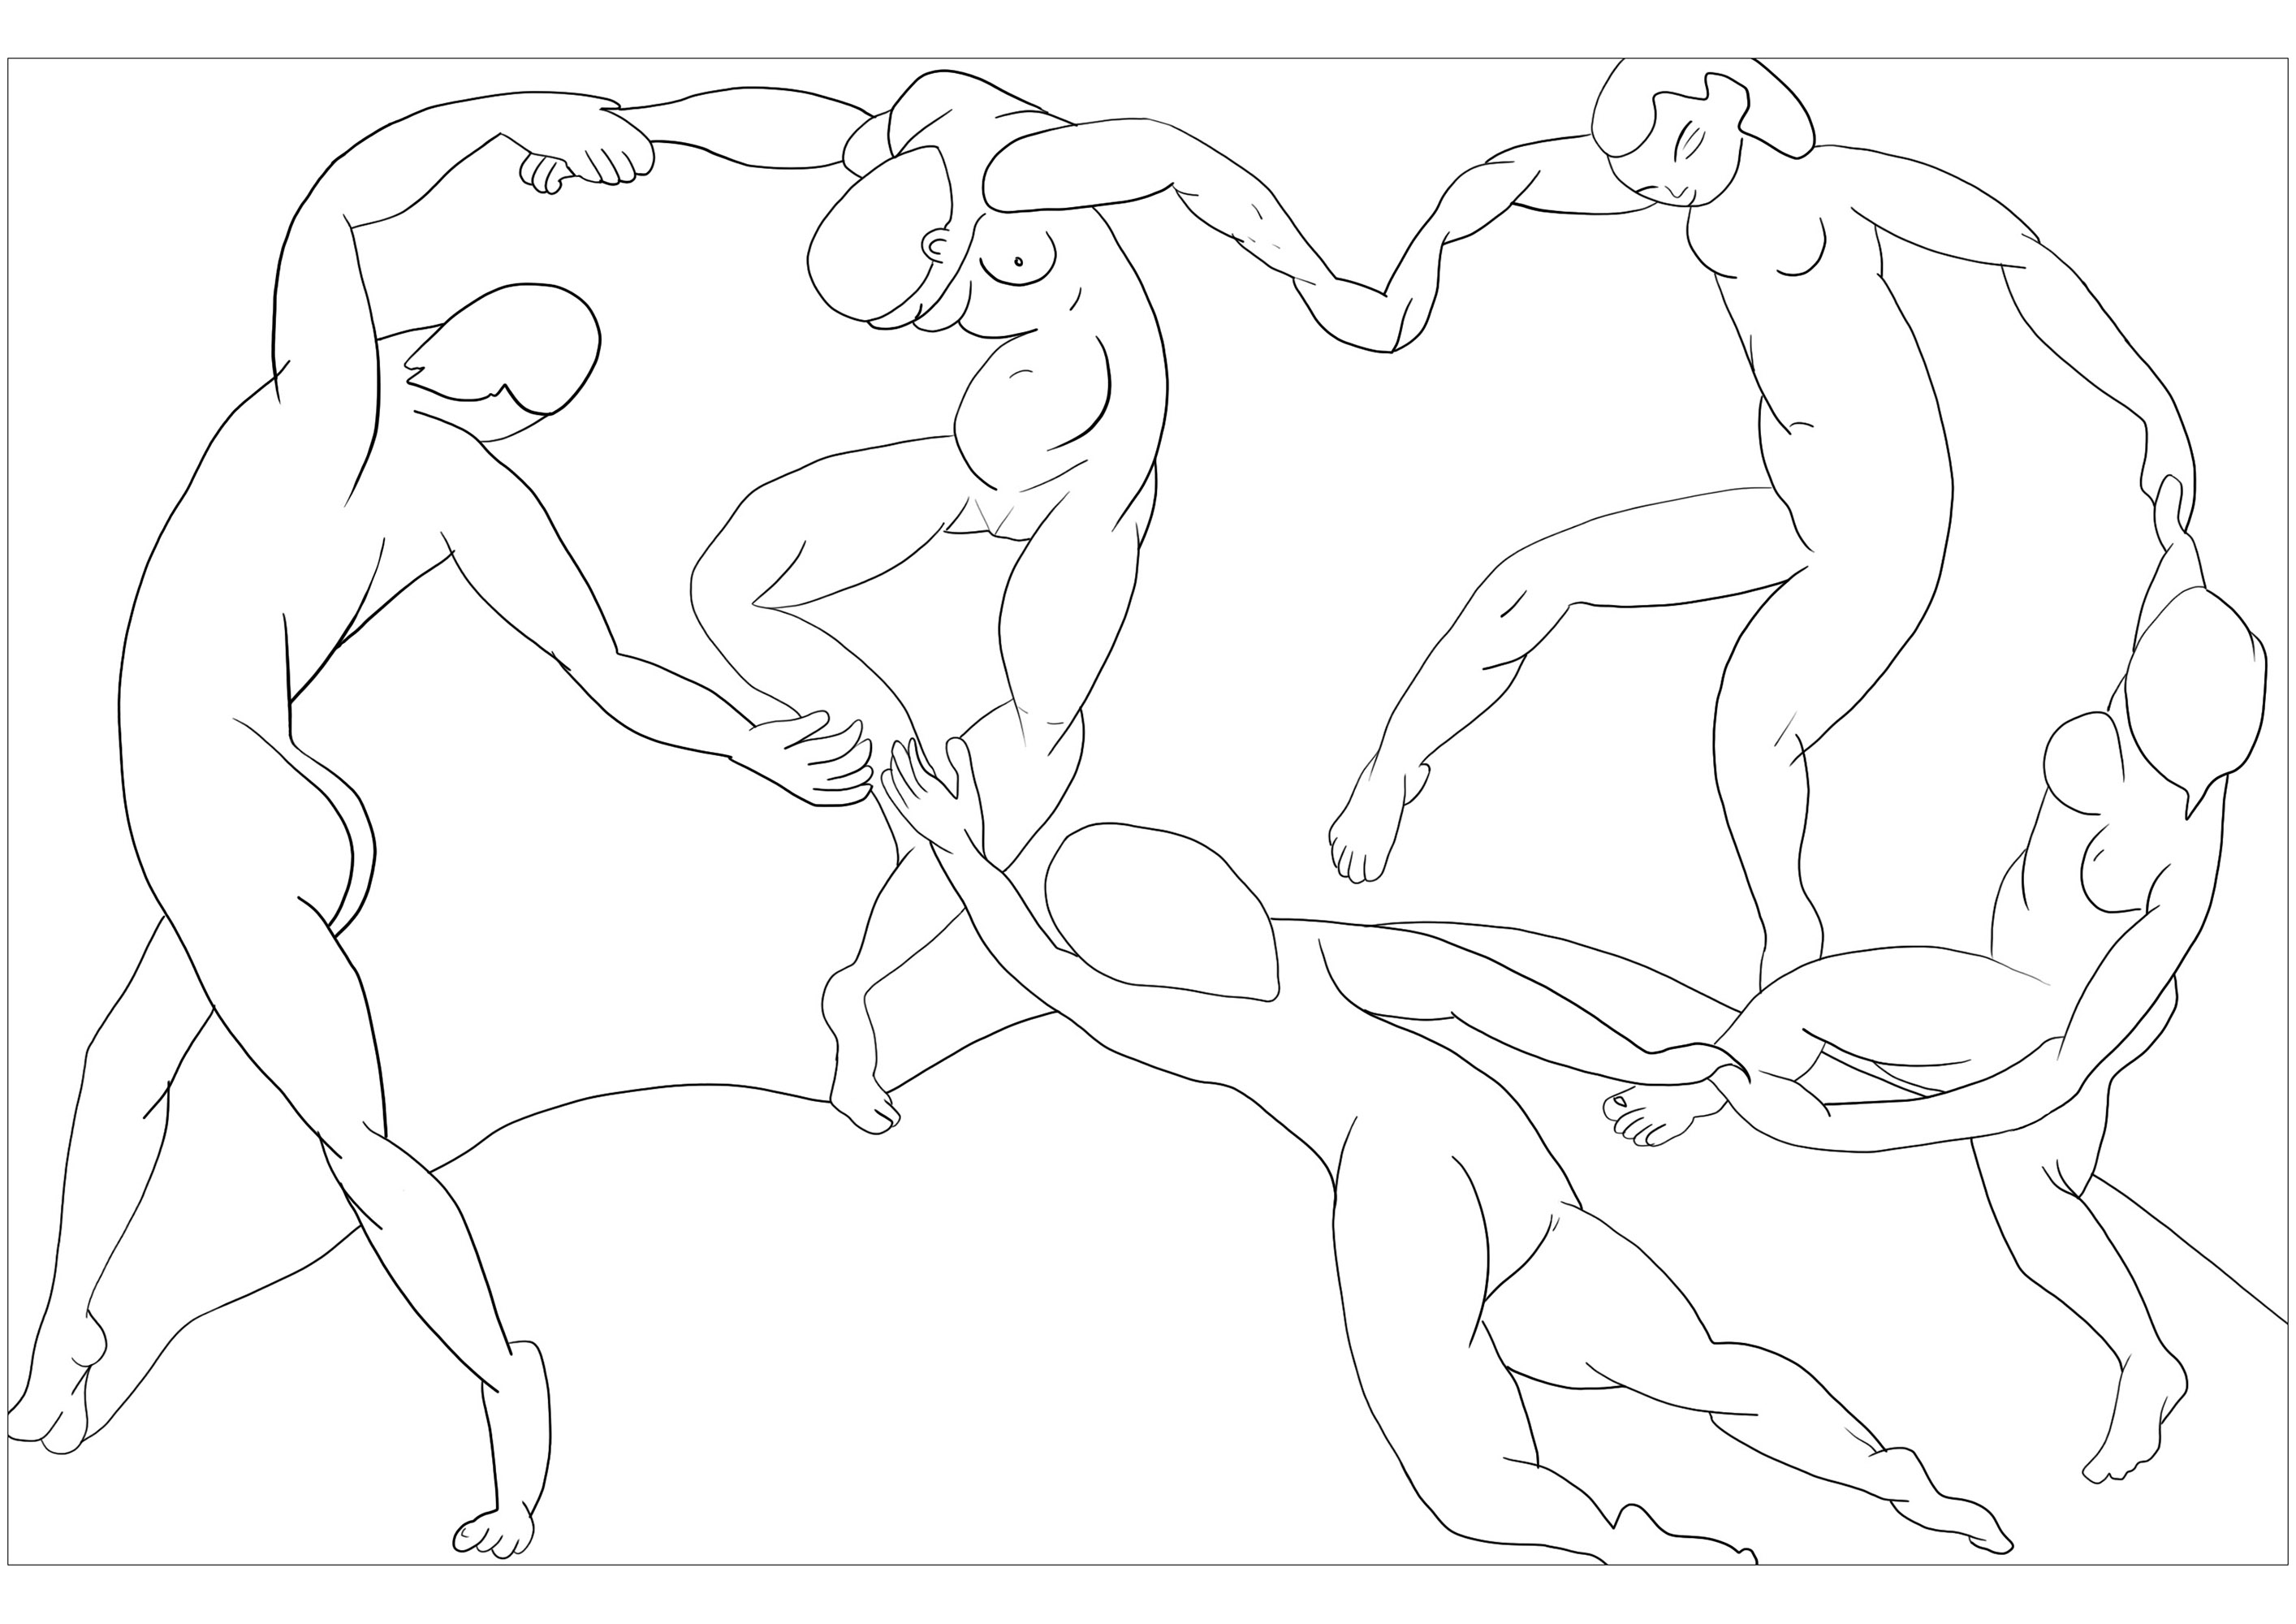 Coloring page created from The Dance by Henri Matisse (1909-1910)